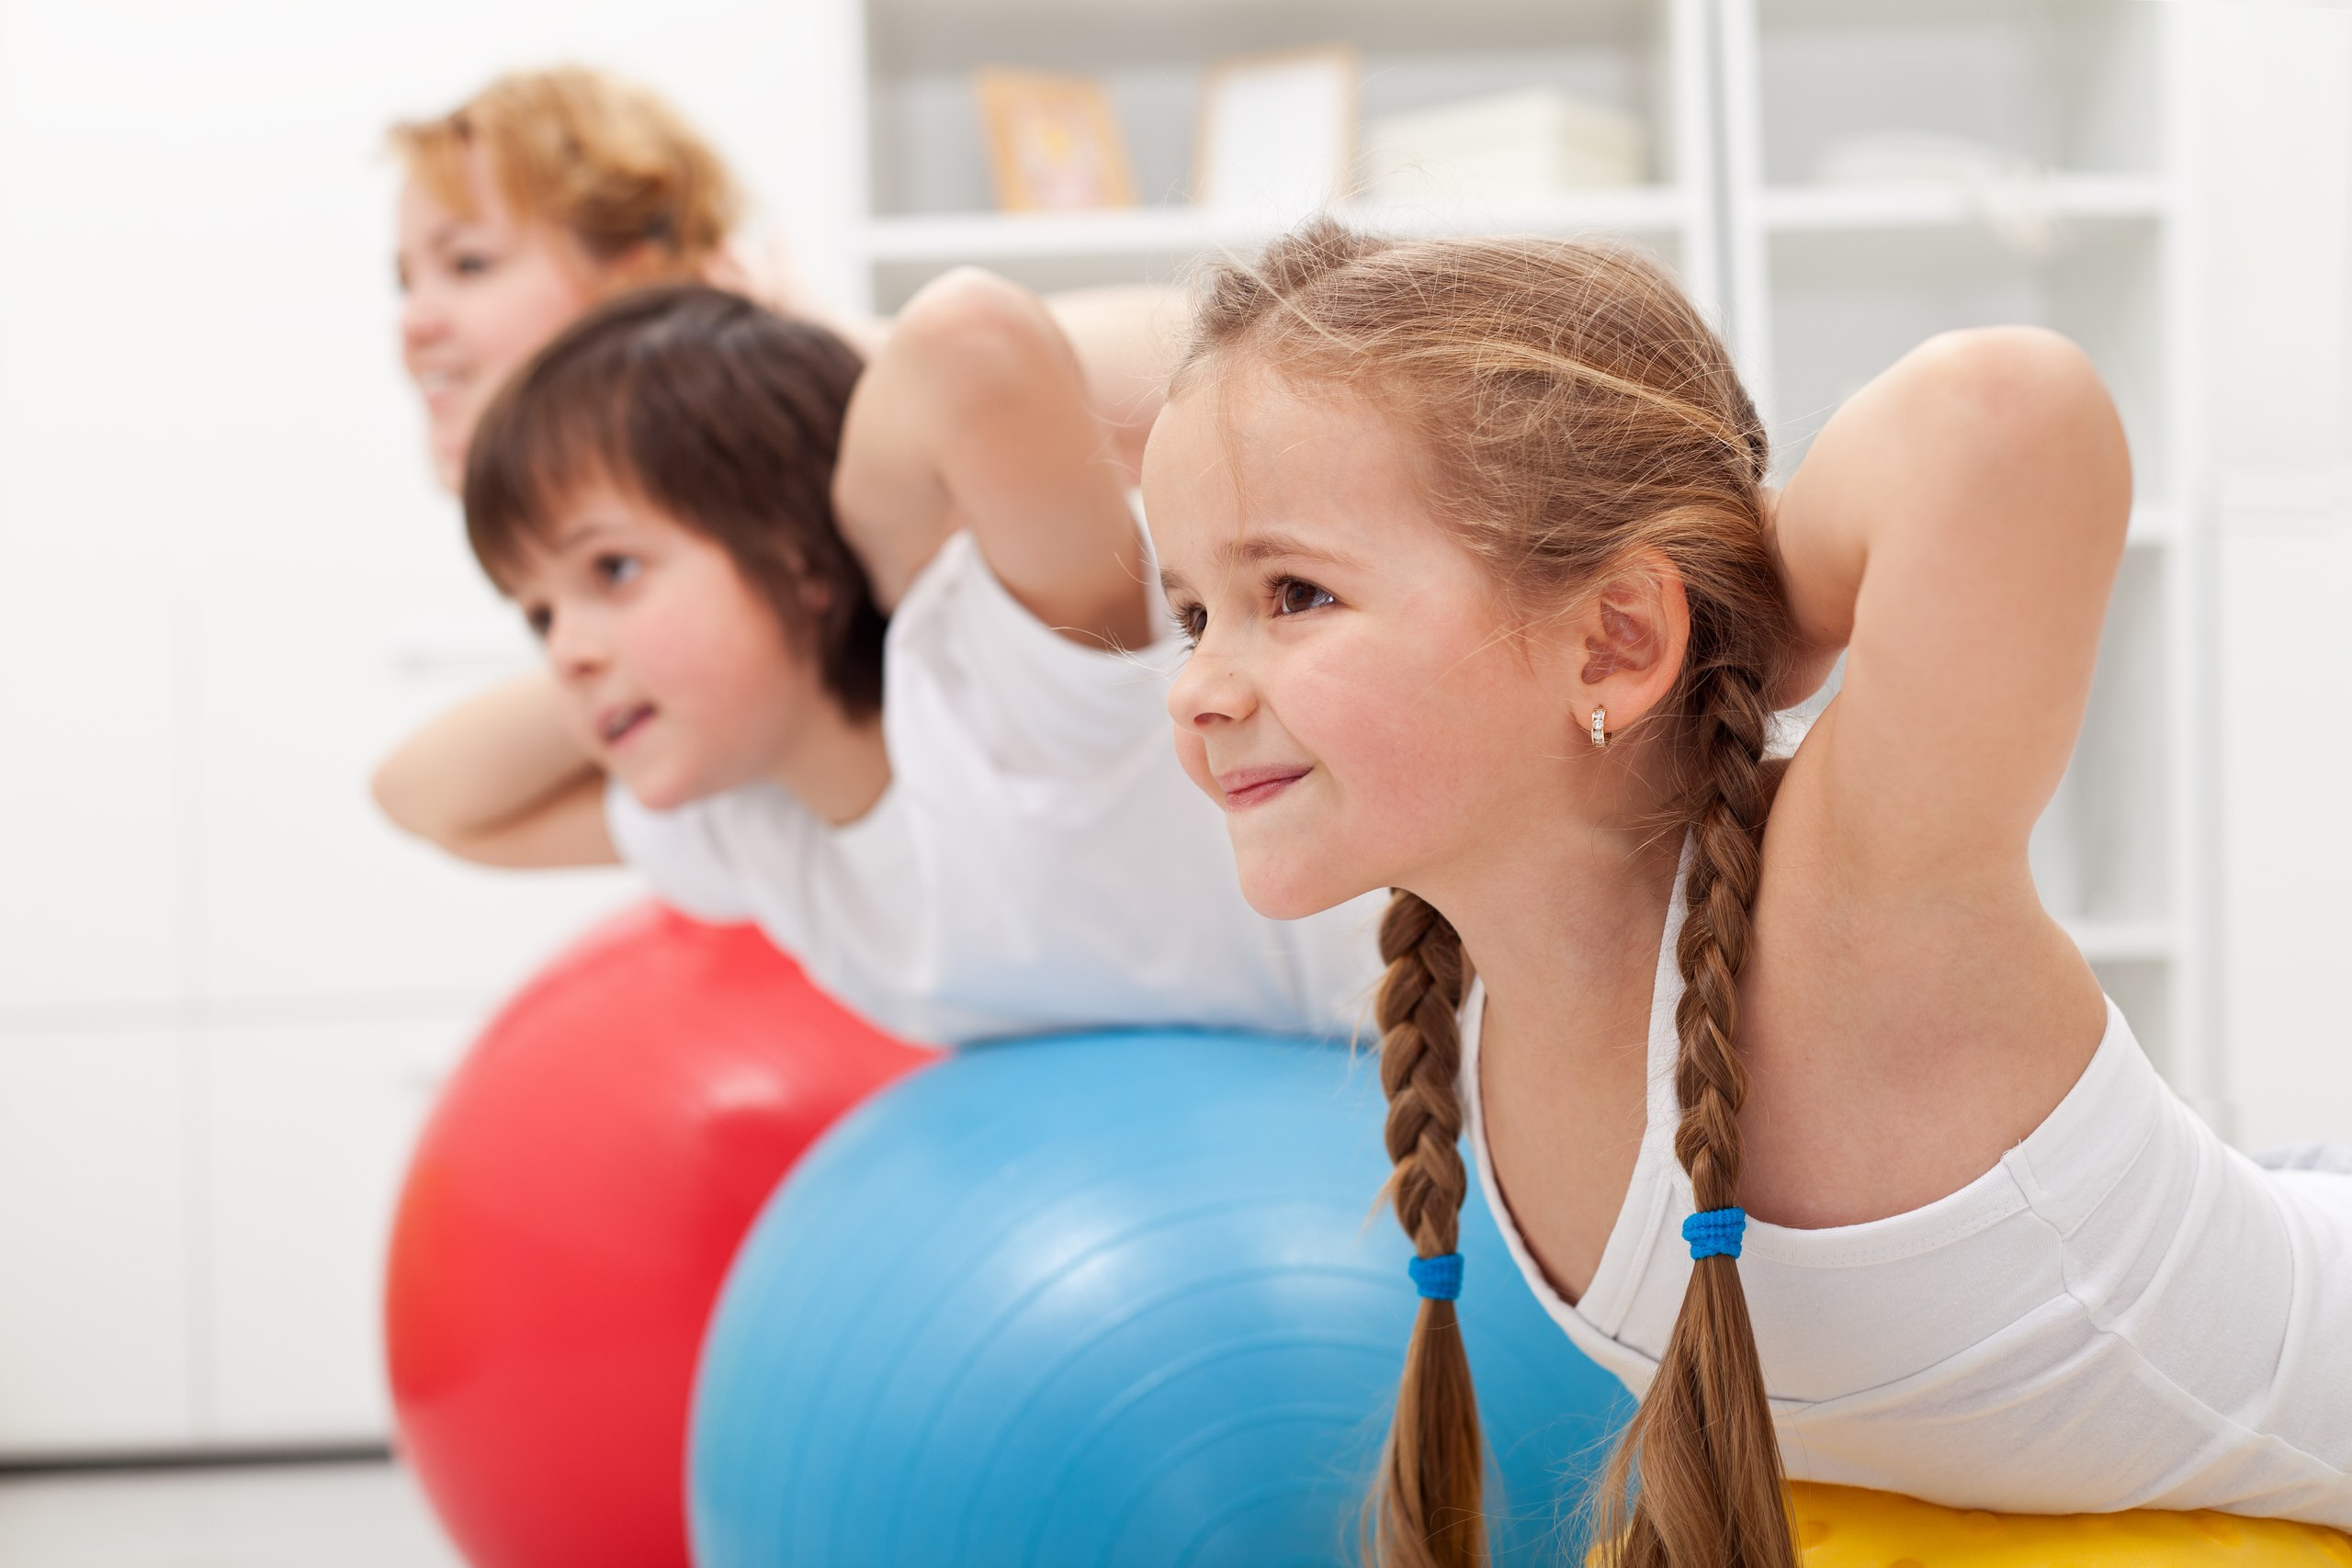 children in sports develop life skills Are important life skills fostered by youth sports  youth sport can help children develop  (2016) kid sports can foster self-improvement, social skills.